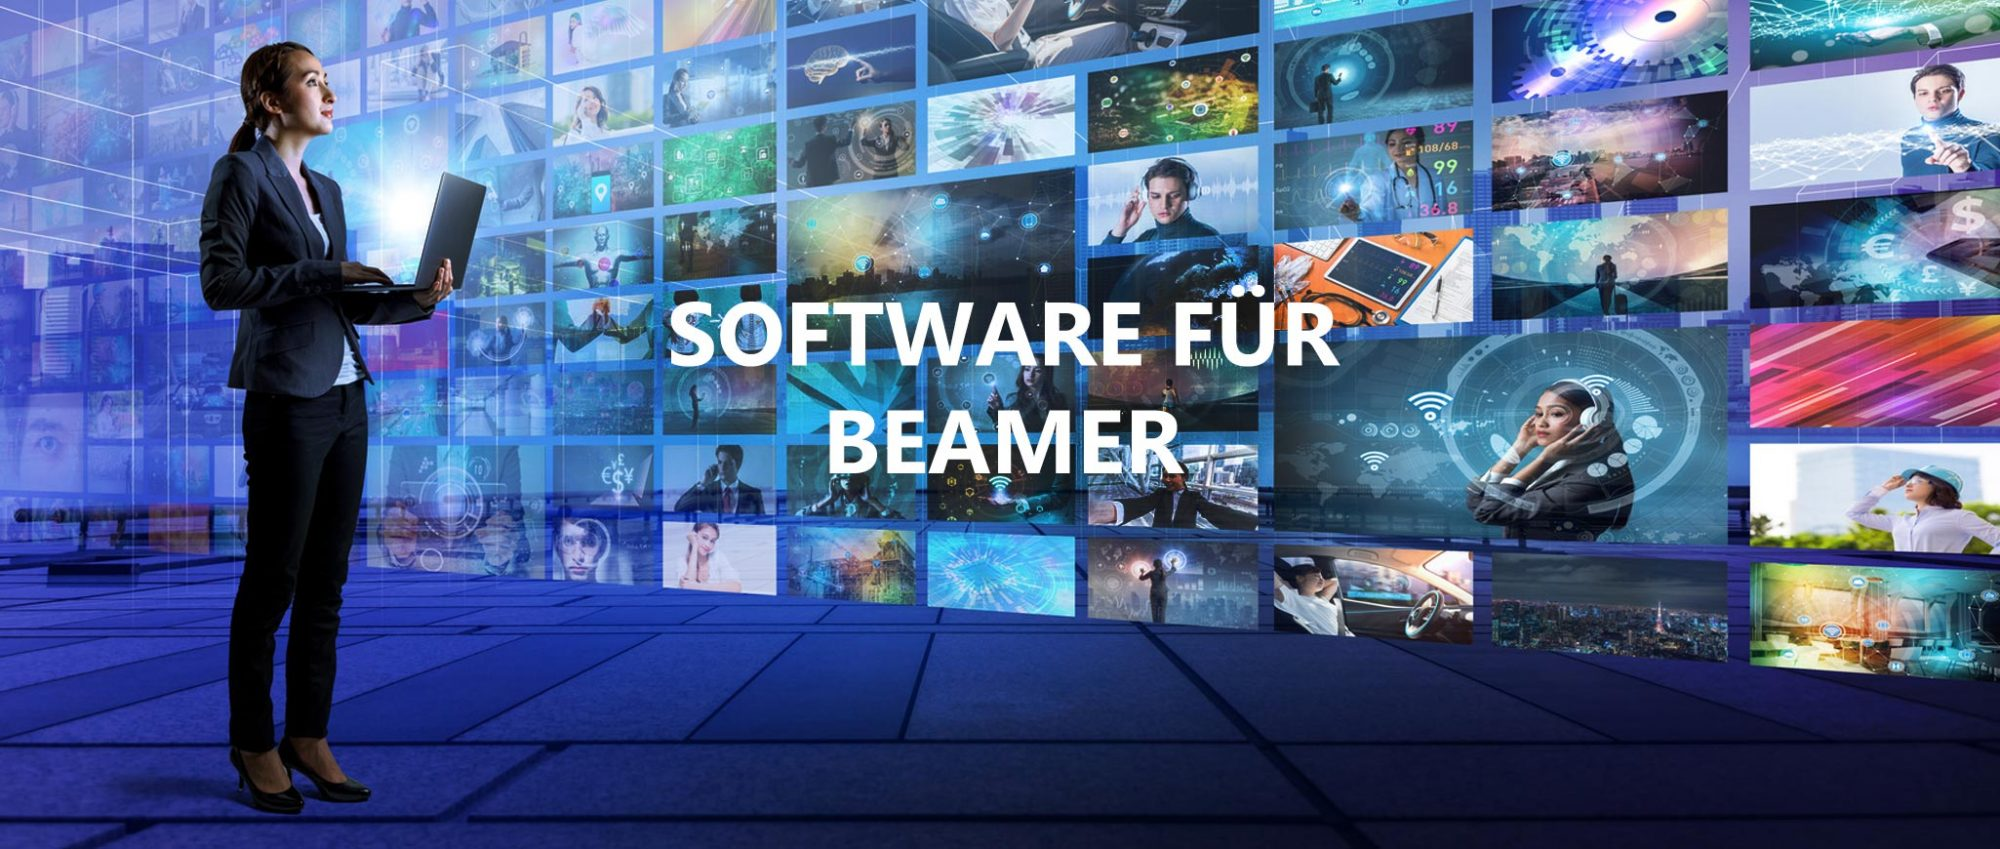 Software für Beamer